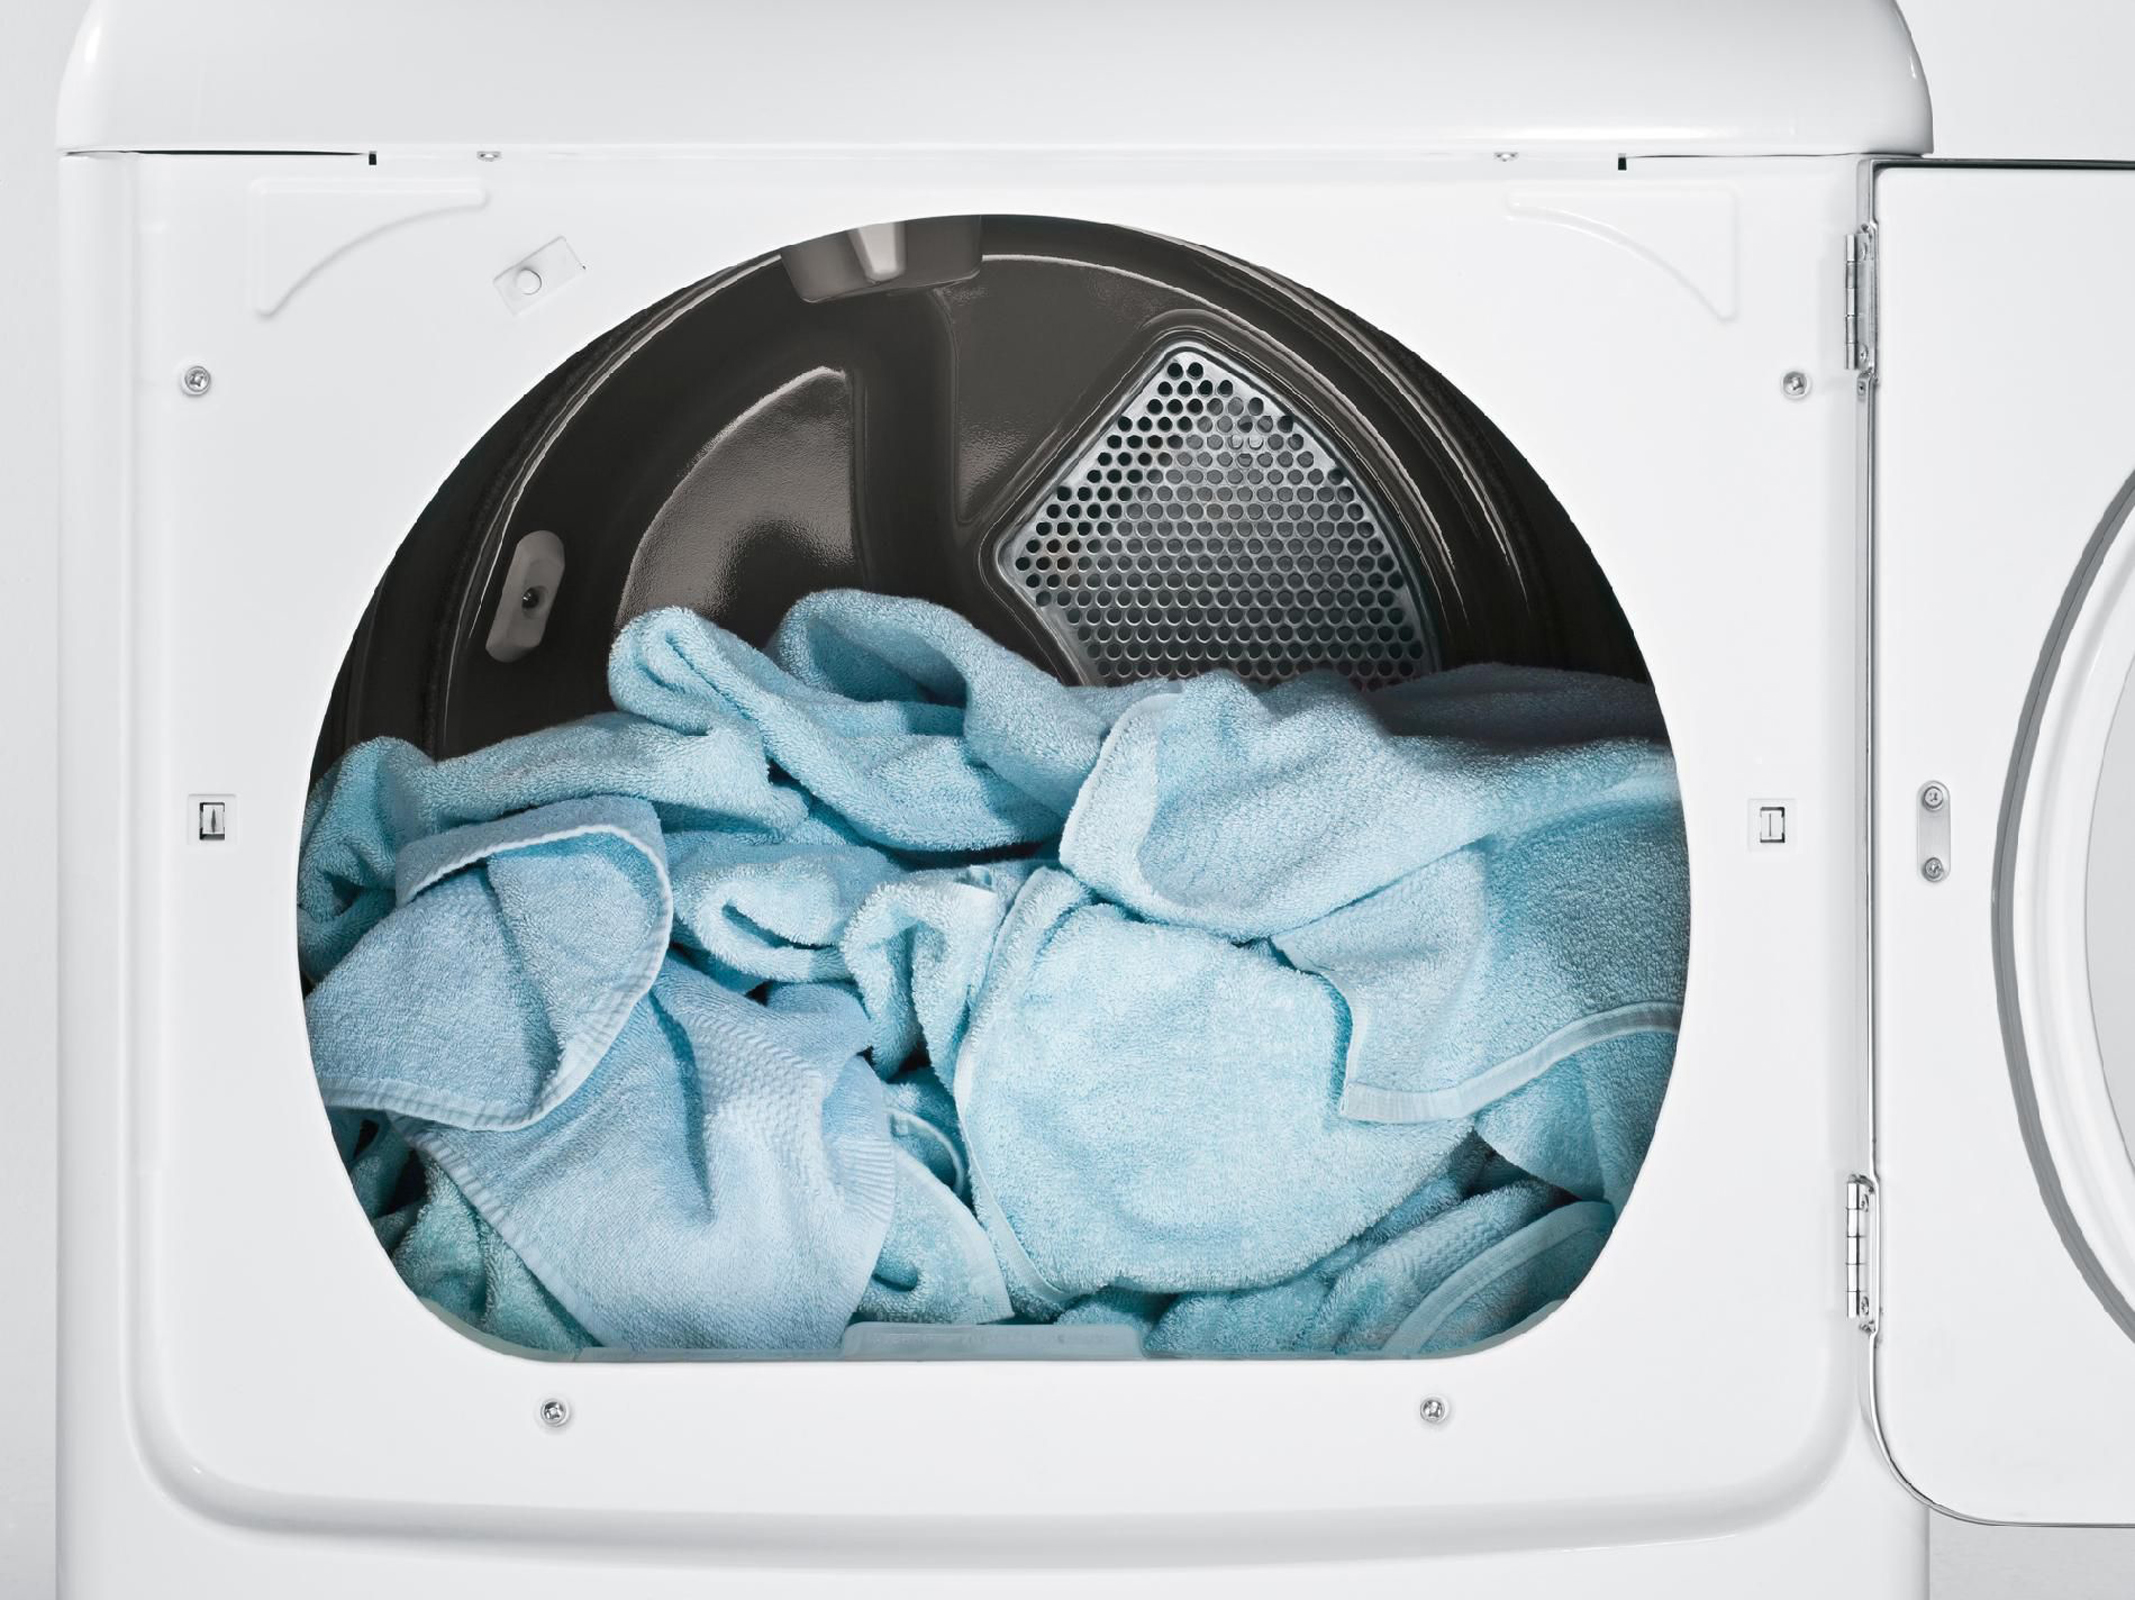 GE 7.8 cu. ft. Electric Dryer - White